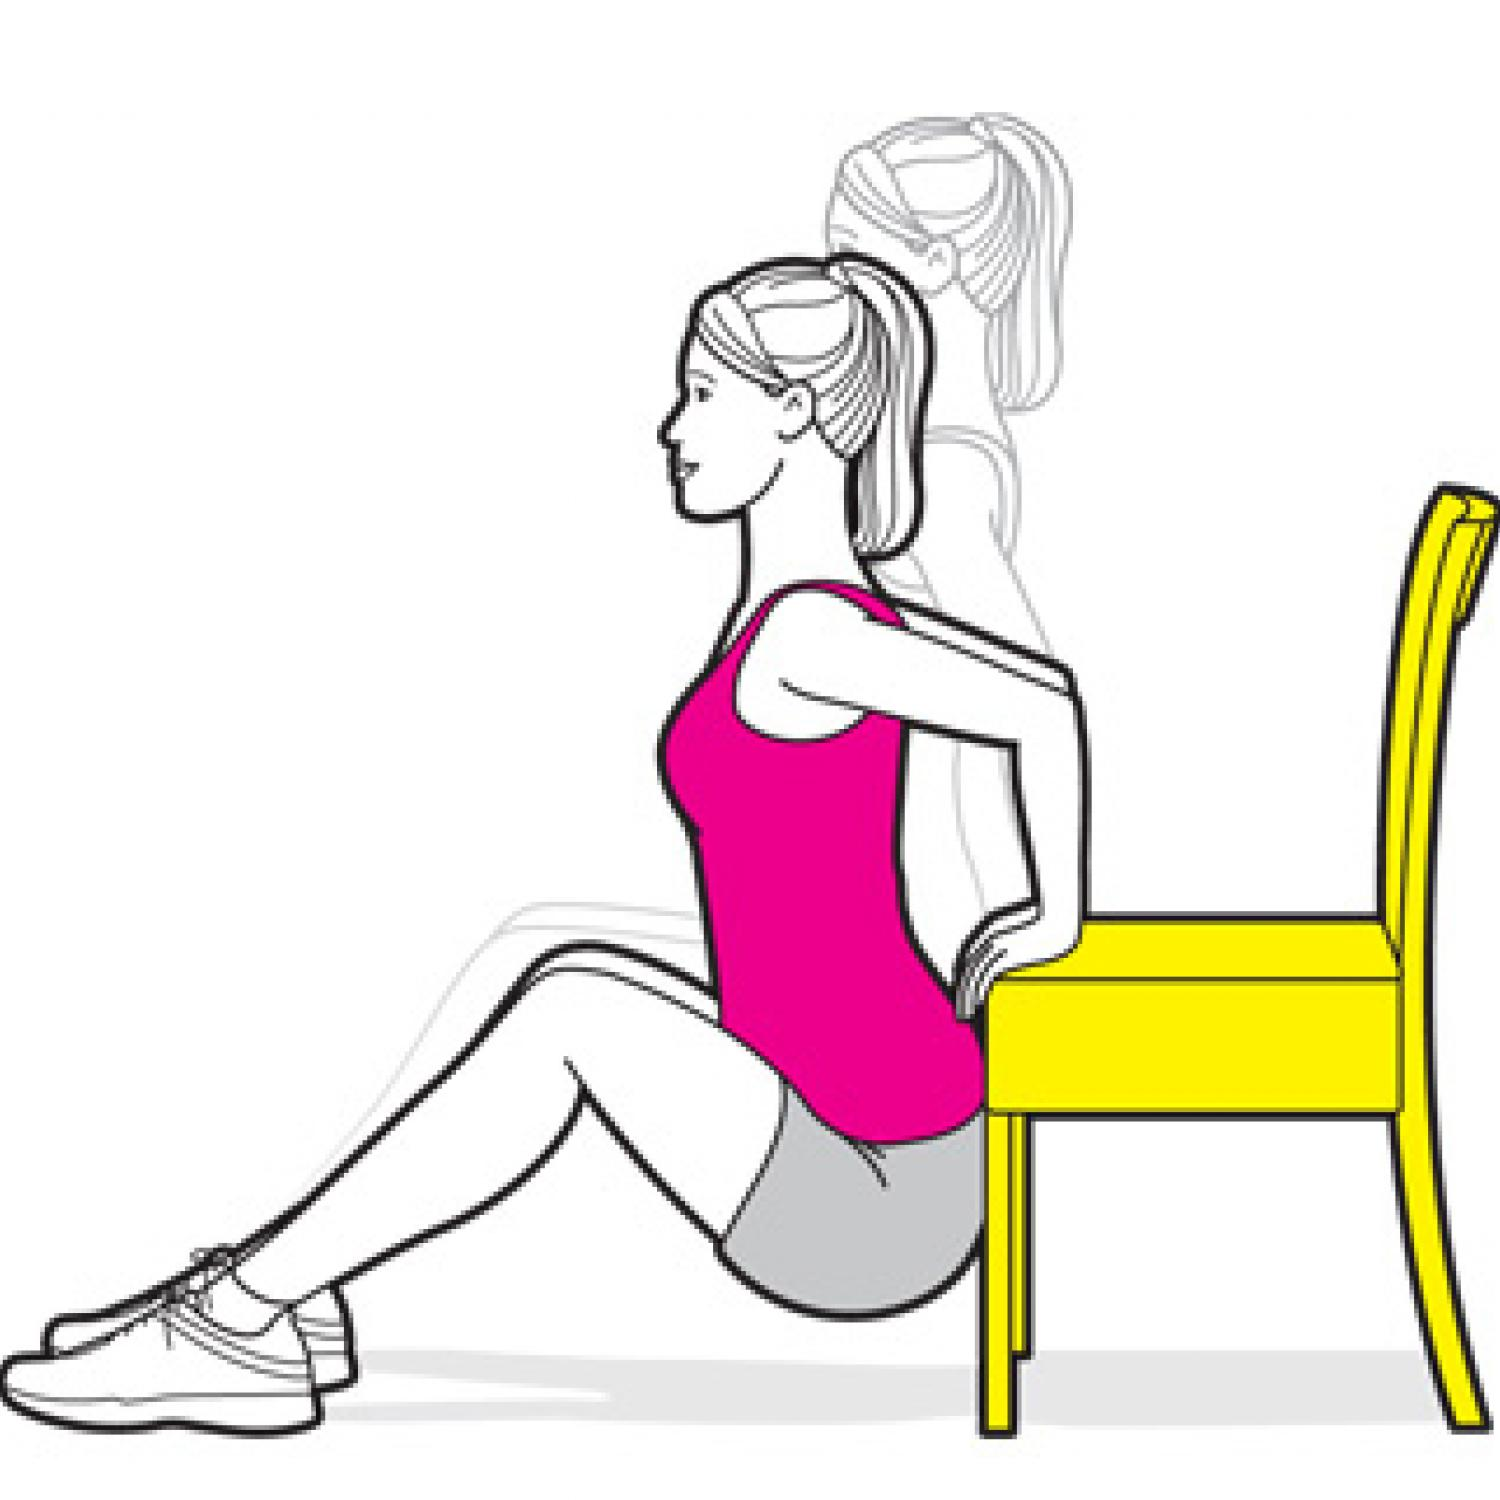 Astonishing Easy 10 Minute Workout For Busy Moms Parenting Wiring Cloud Eachirenstrafr09Org